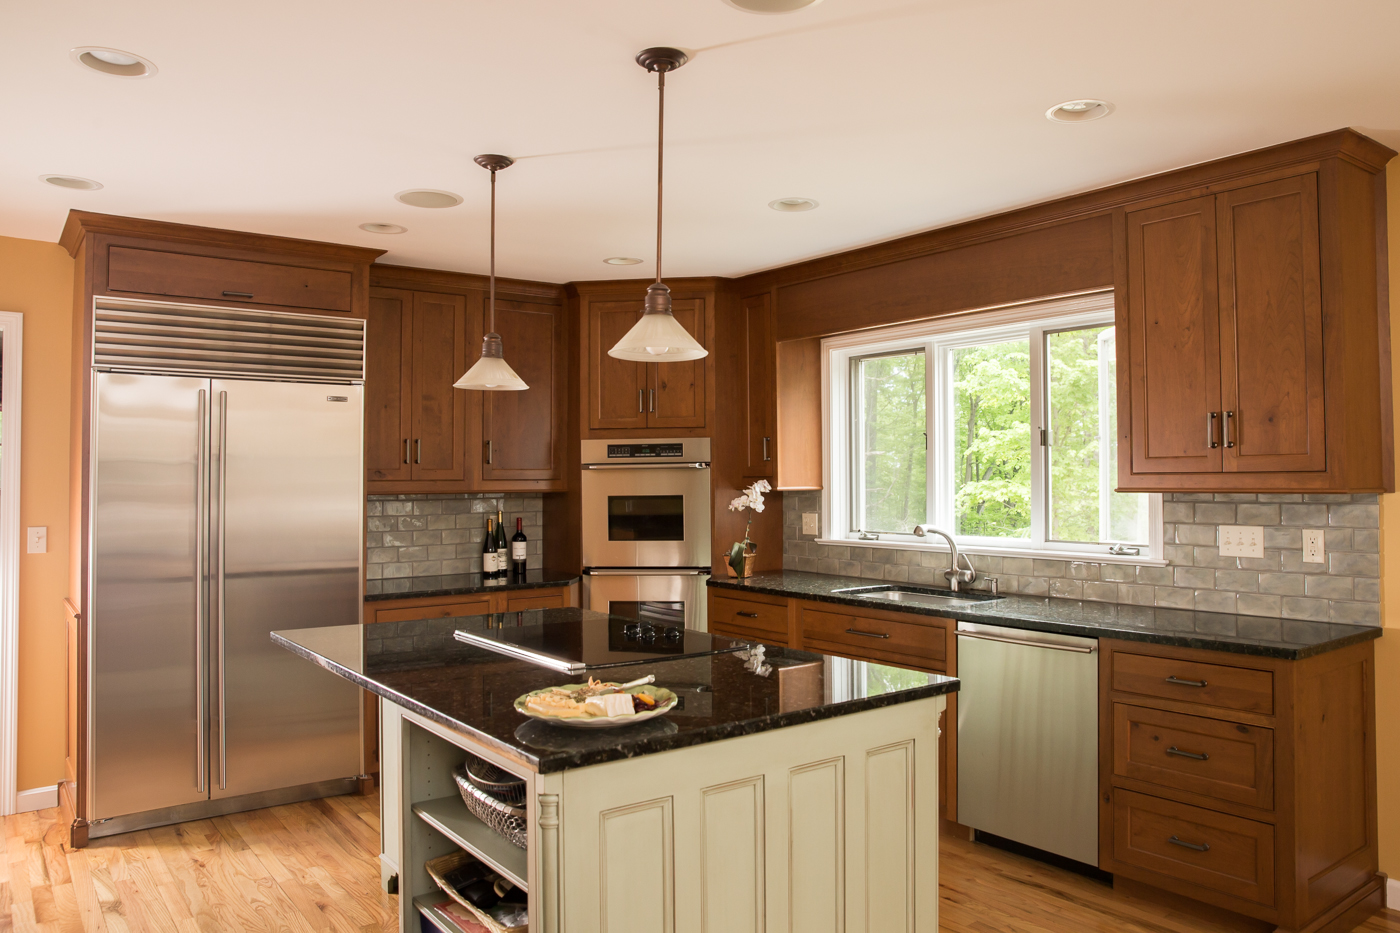 Transitional Cherry Kitchen Cabinets